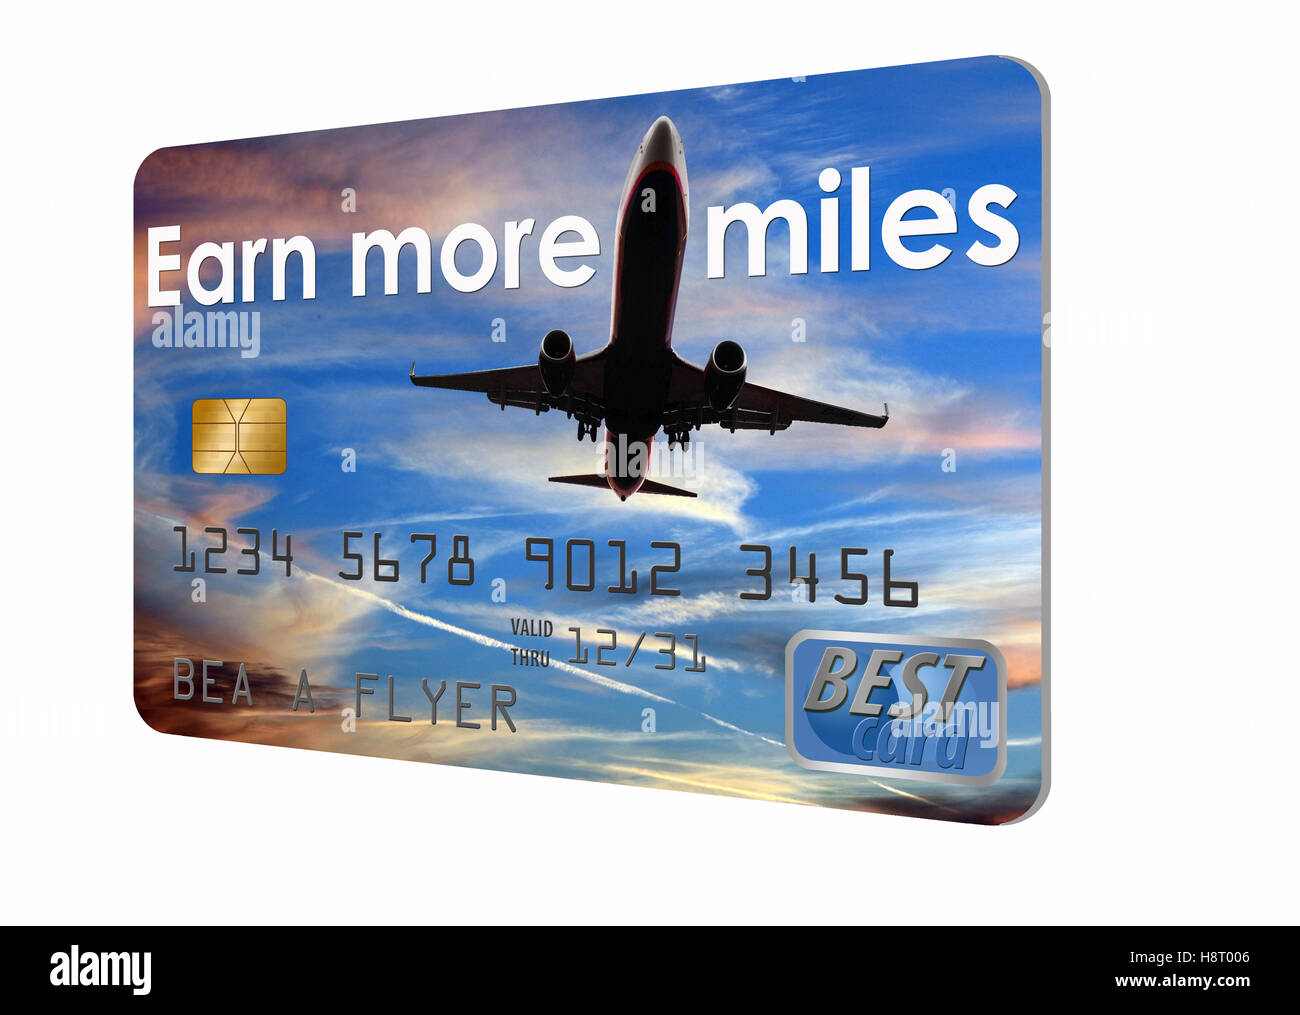 Earn more miles credit card with an airplane in the sky design. Debit card or credit card. Isolated on a white background. - Stock Image